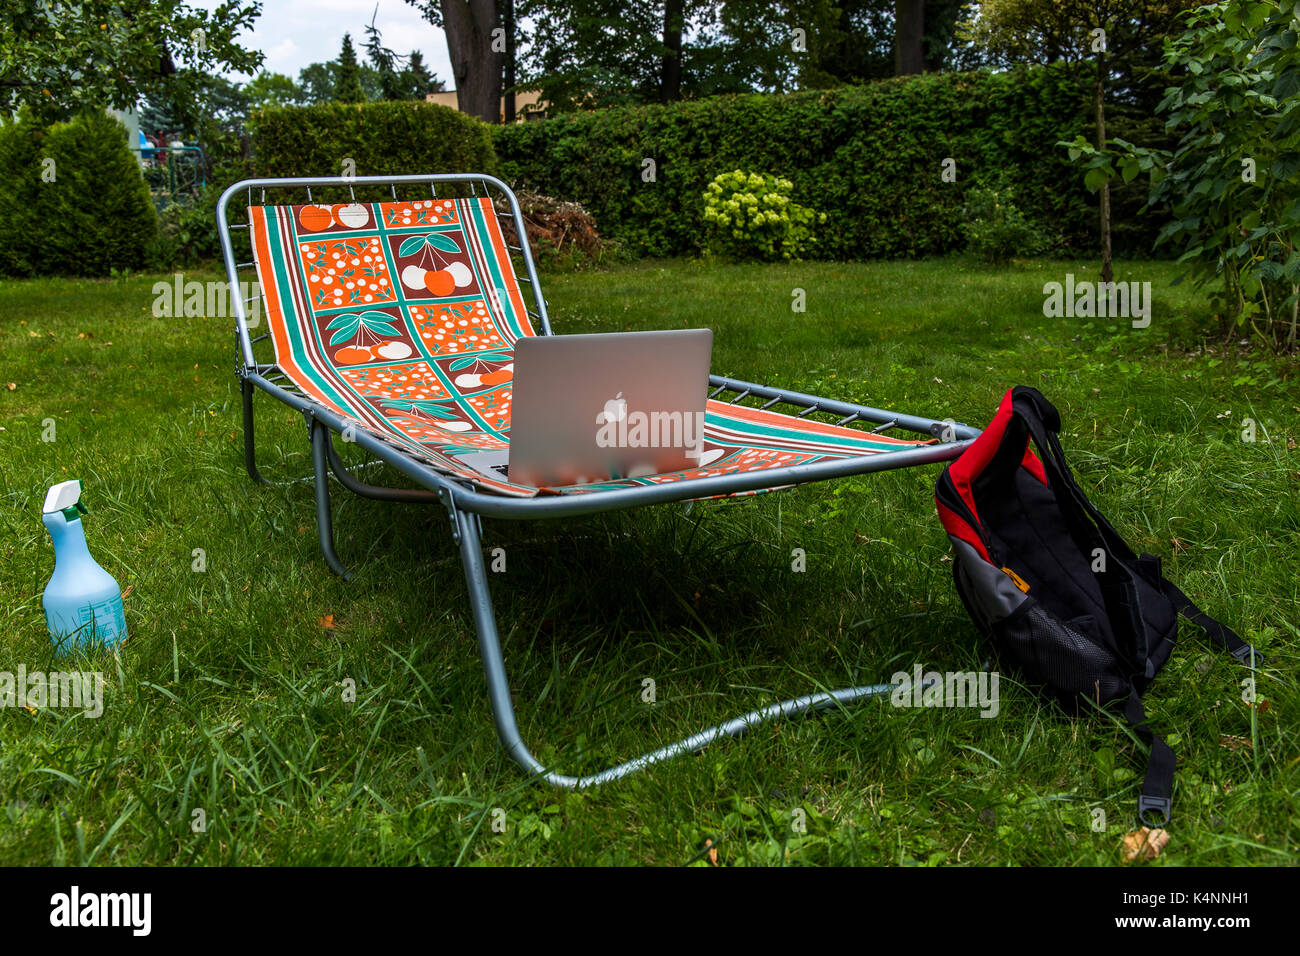 Sunbed on the grass with apple macbook on it and a bag. Stock Photo